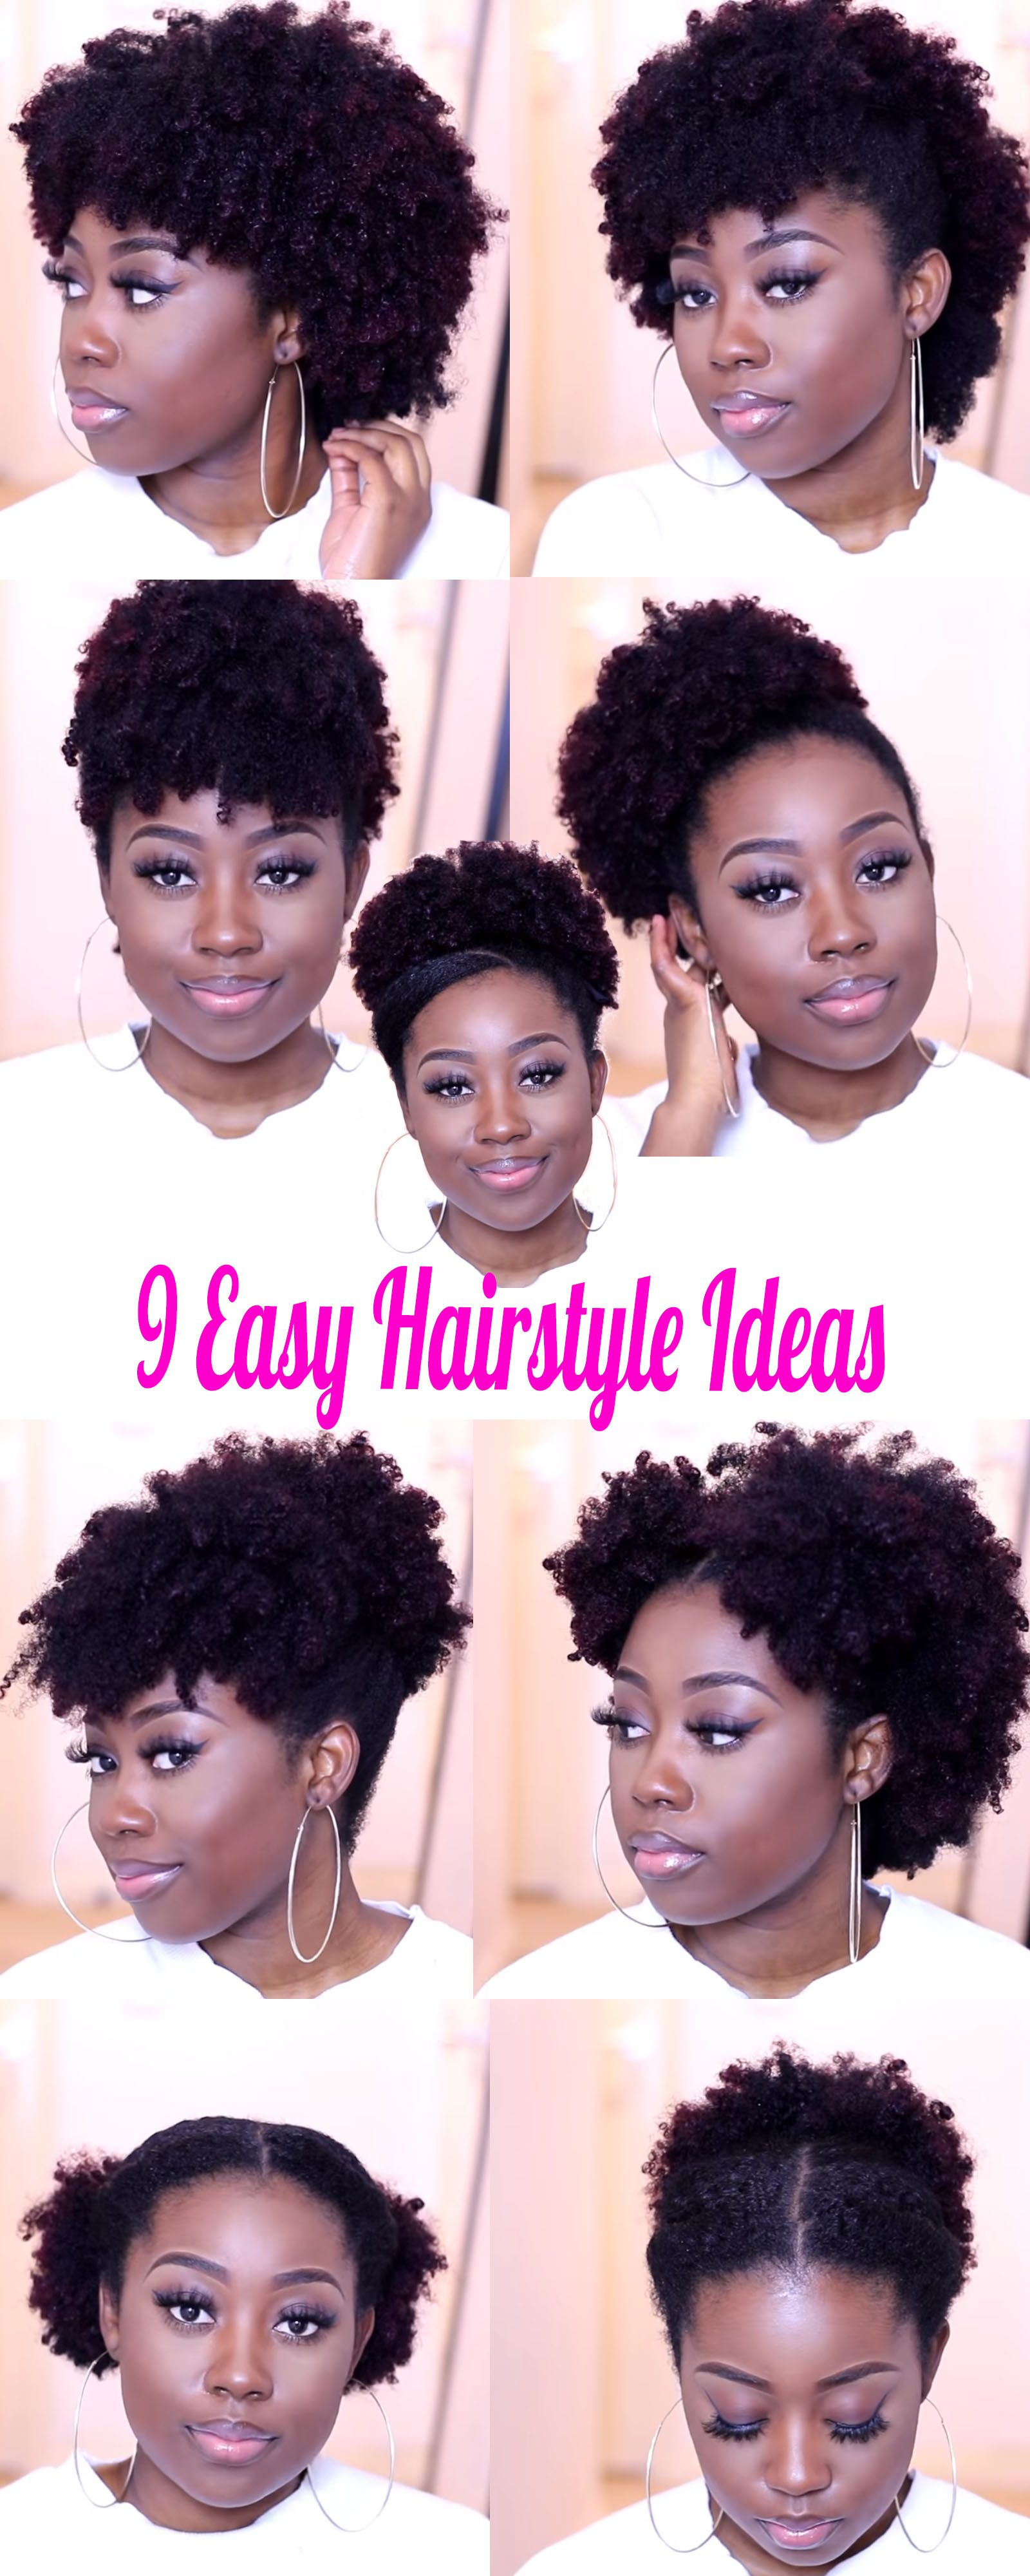 9 Medium Natural Hairstyle Ideas You Can Quickly Create On The Go African American Hairstyle Videos Aahv Natural Hair Styles Natural Hair Styles For Black Women Short Natural Hair Styles